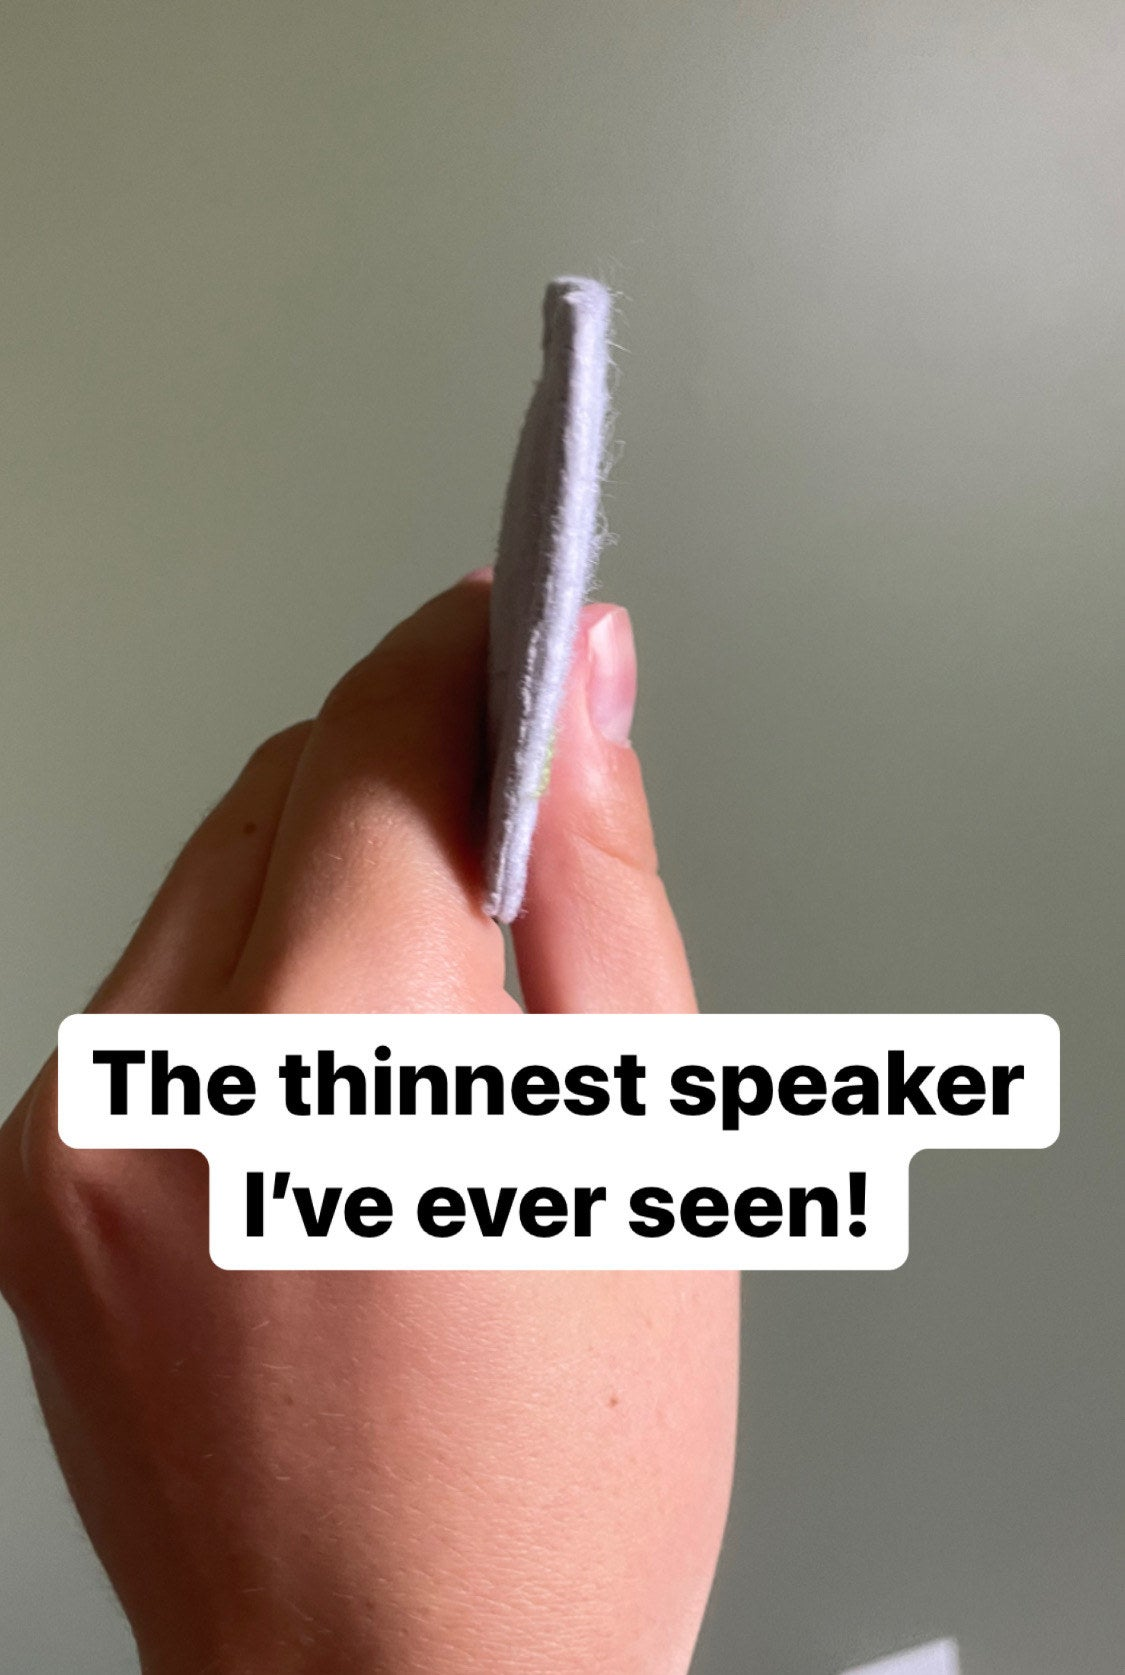 """the writer showing the super thin speaker from the side captioned """"the thinnest speaker I've ever seen"""""""